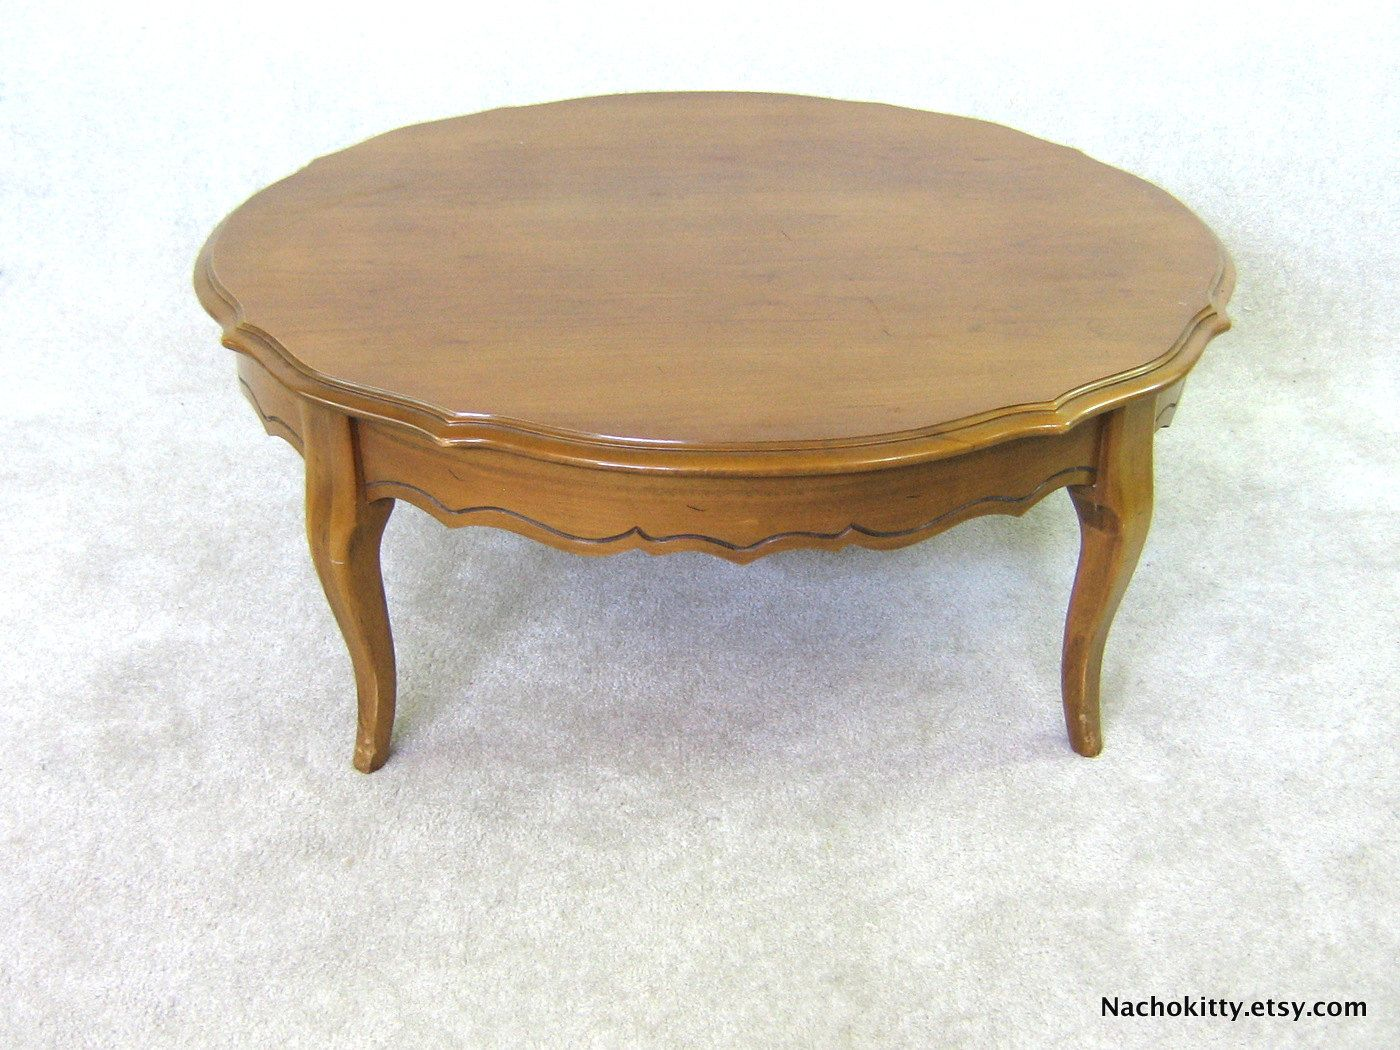 Maple Wood Coffee Table.1960s Maple Coffee Table Early American Solid Wood Craftsmanship